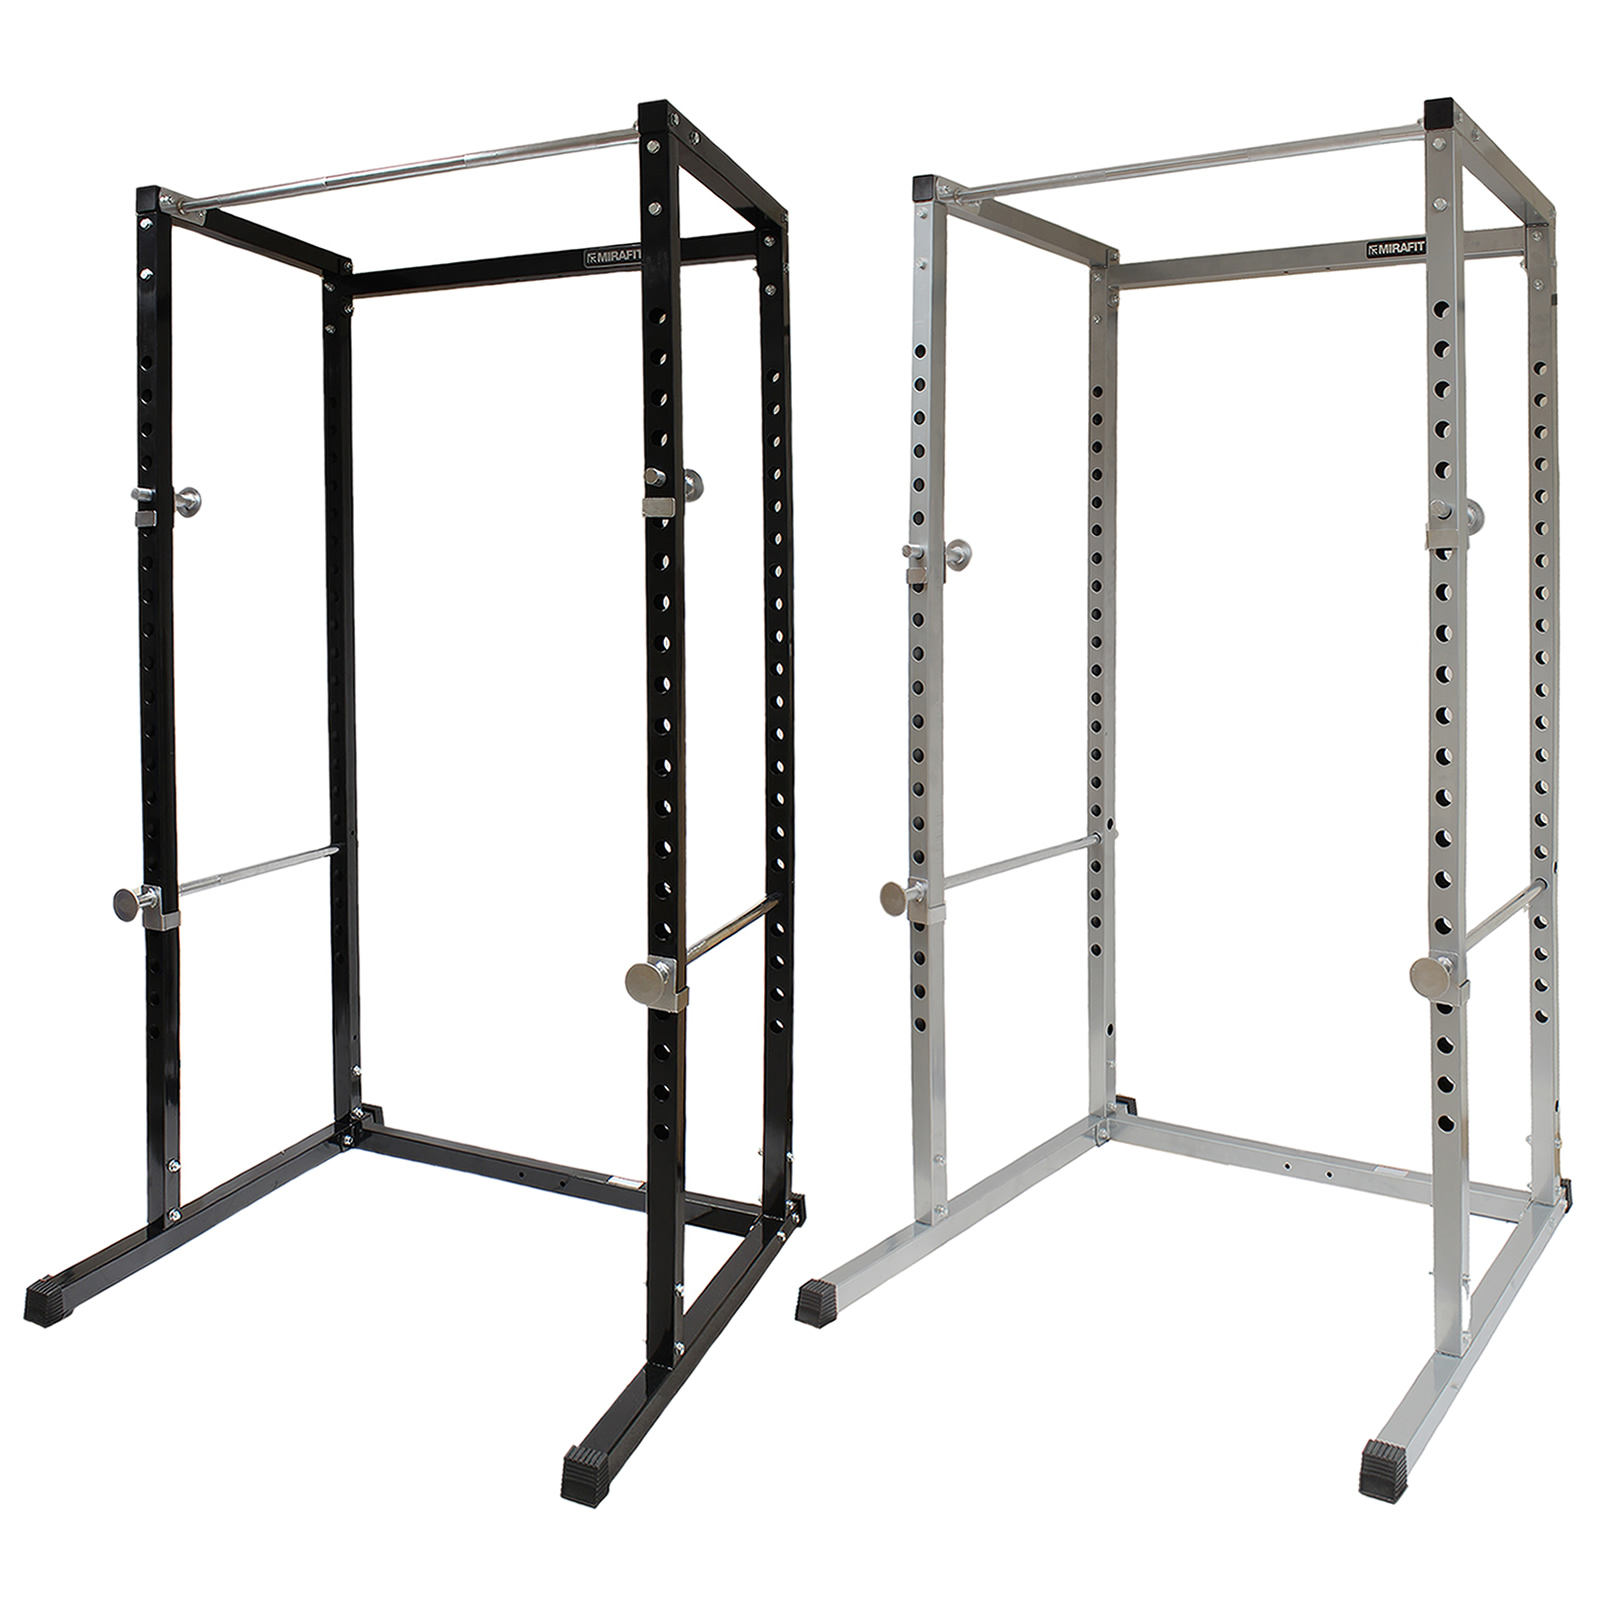 bench and homemade press for to equipment improve home workouts info rack sale squat safety symbianology